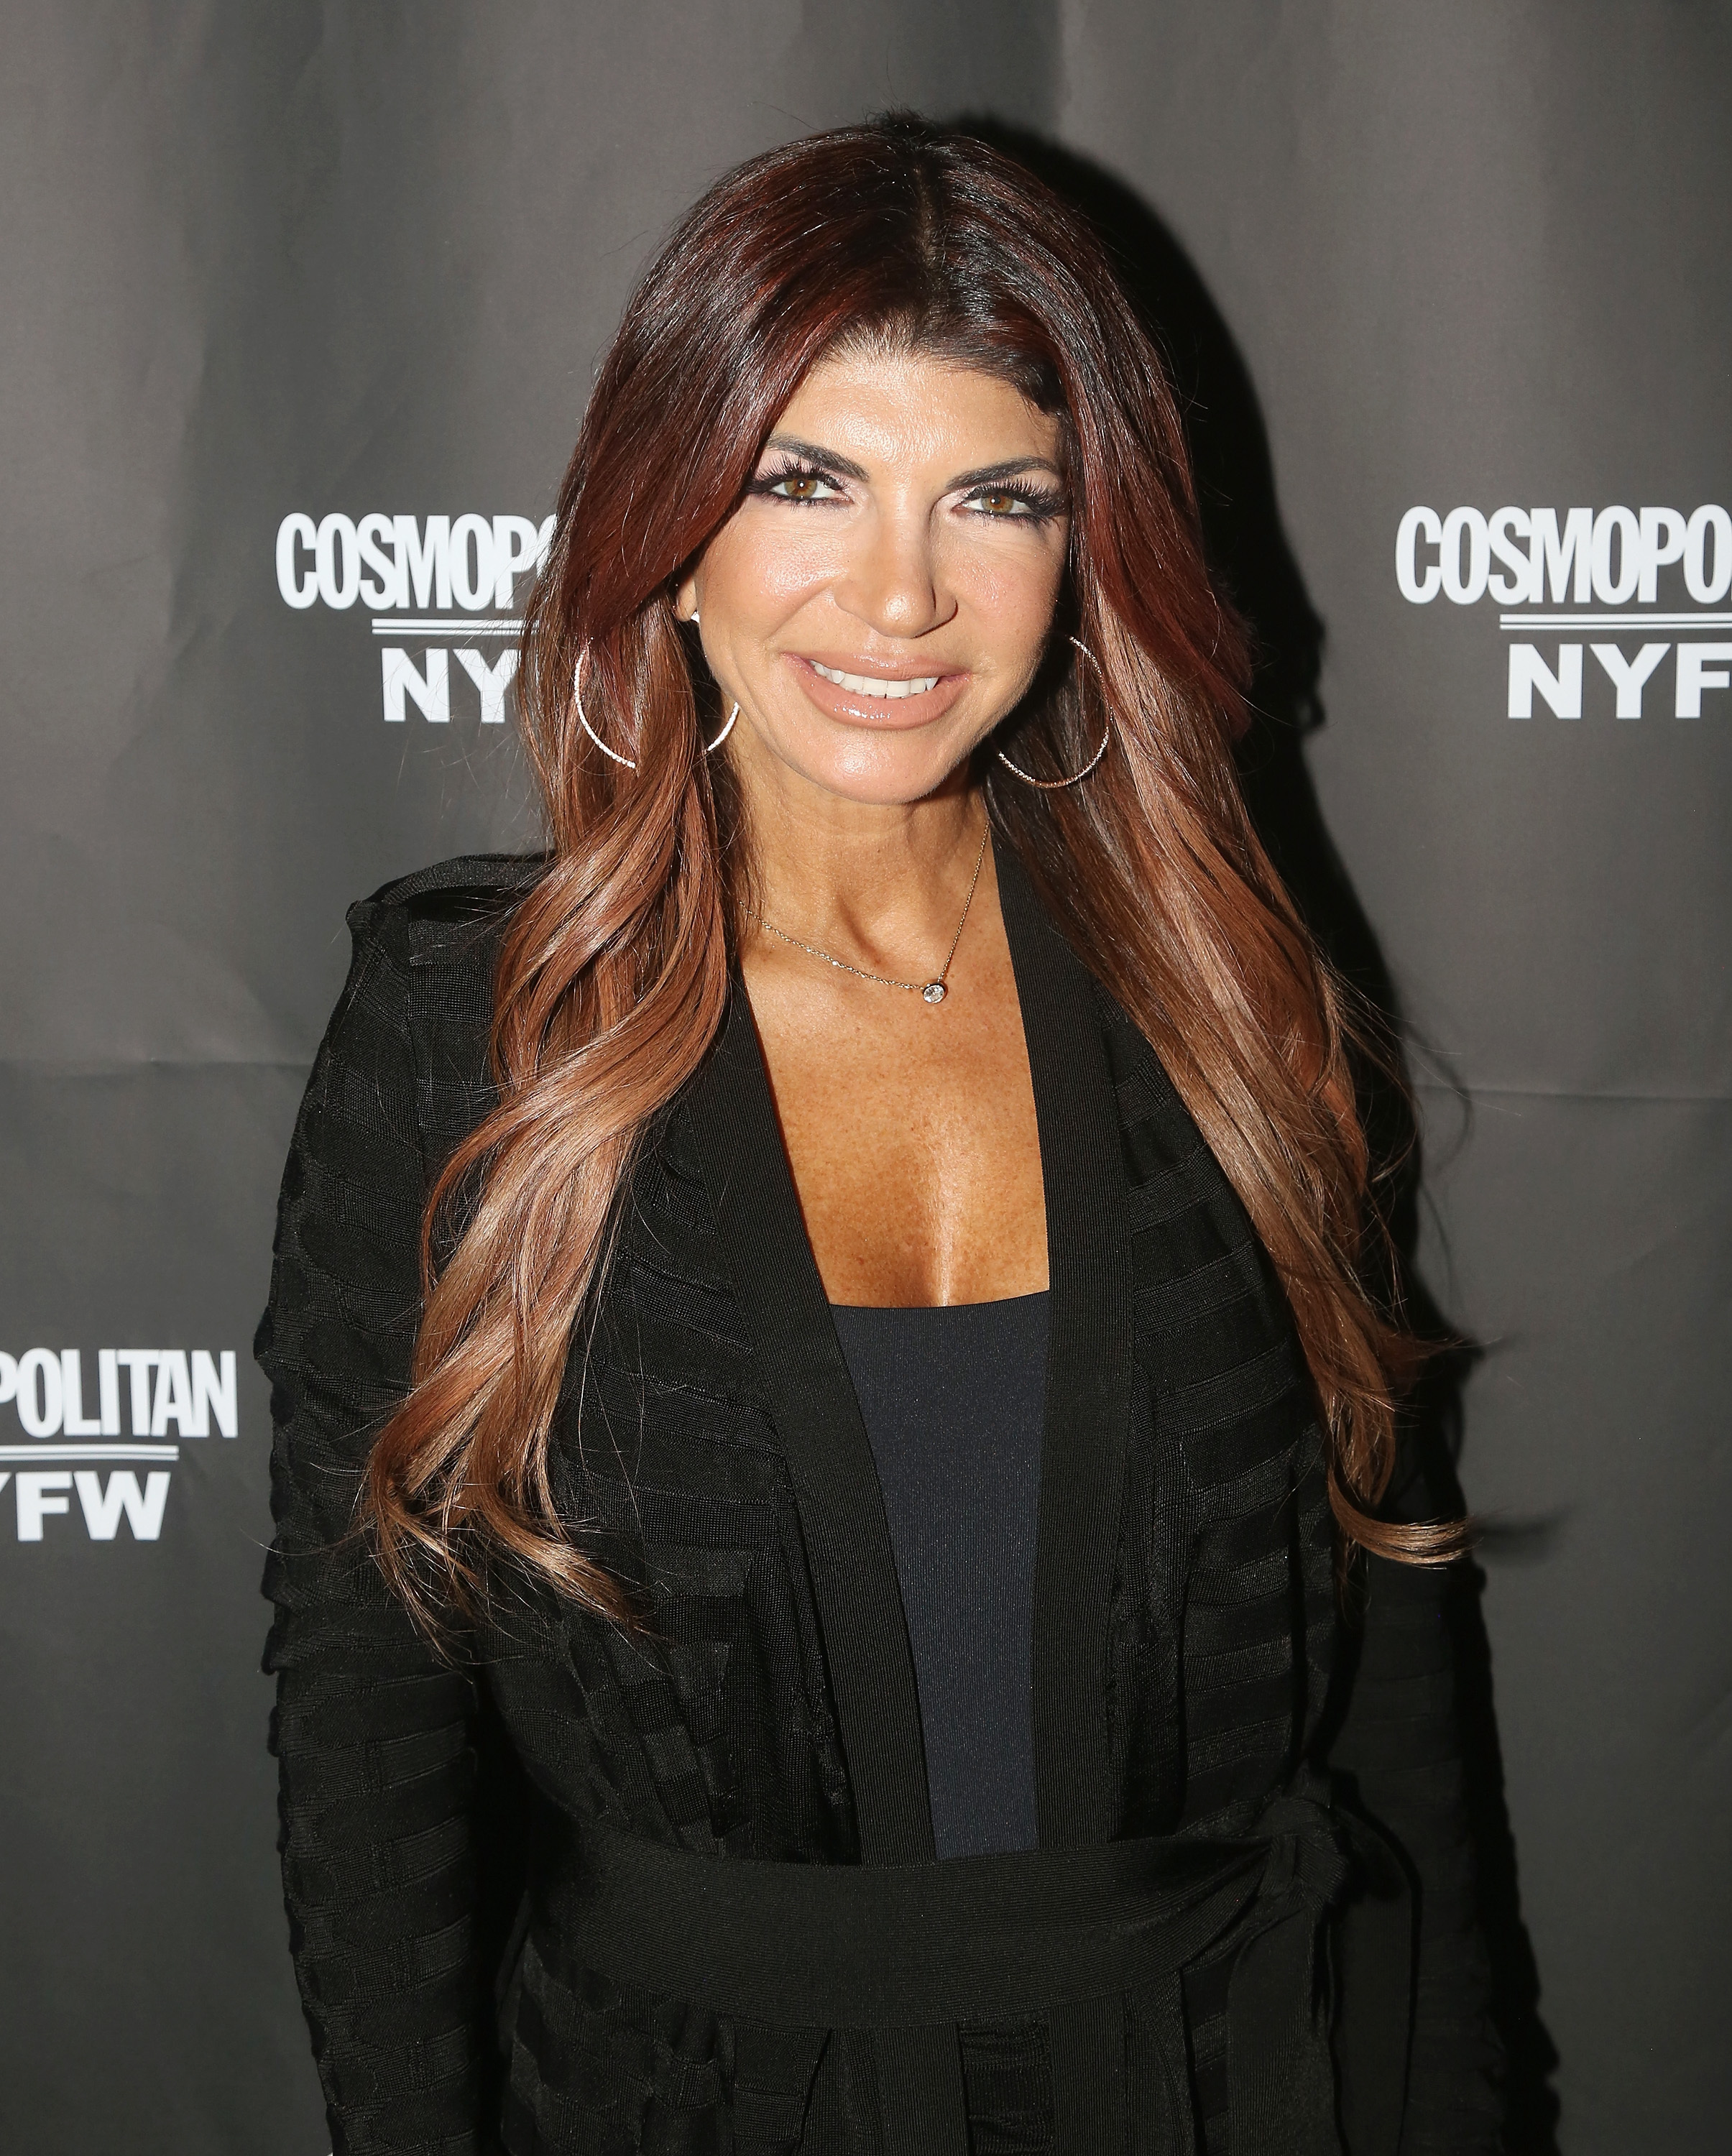 Teresa Giudice poses at the Cosmopolitan New York Fashon Week #Eye Candy event After Party at Planet Hollywood Times Square in New York City on Feb. 8, 2019.